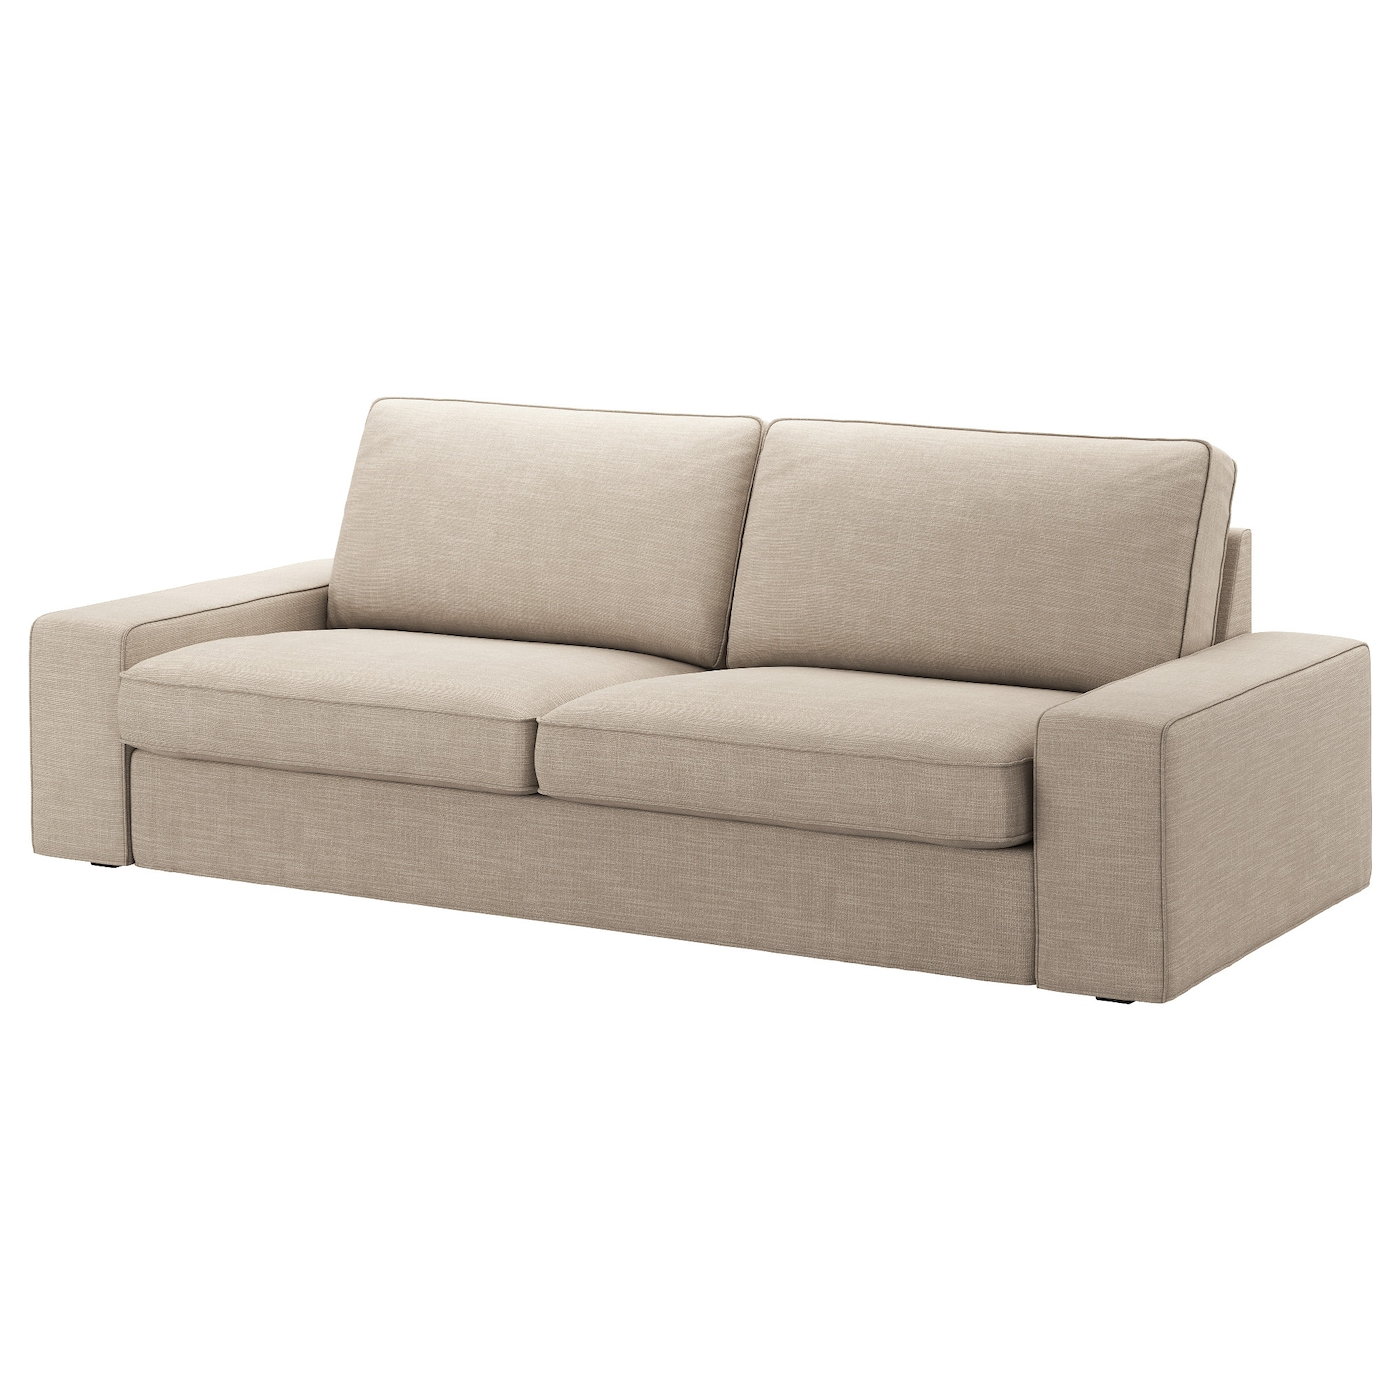 Kivik three seat sofa hillared beige ikea for Kivik chaise ikea